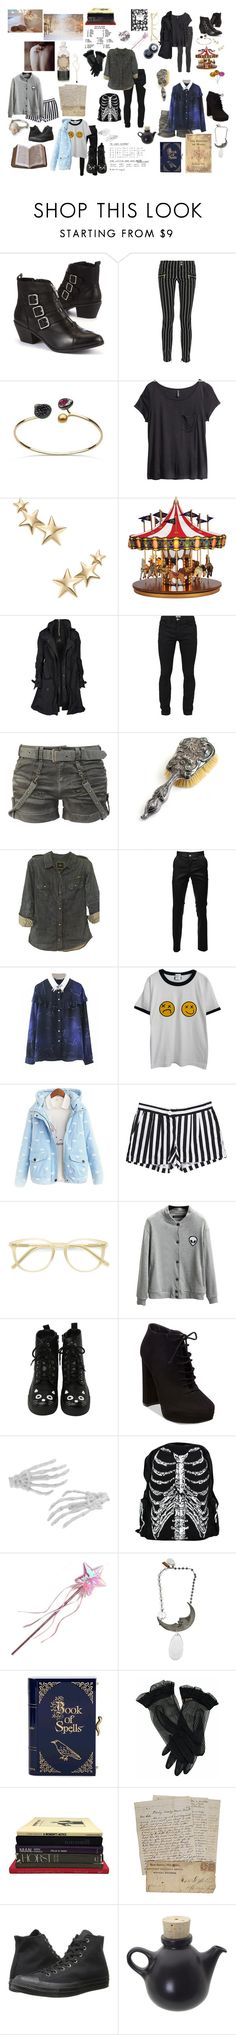 """""""Untitled #135"""" by elliotchasesthestars ❤ liked on Polyvore featuring Balmain, H&M, Kenneth Jay Lane, Mr. Christmas, AllSaints, Acne Studios, CO, Rails, Chicnova Fashion and Ace"""